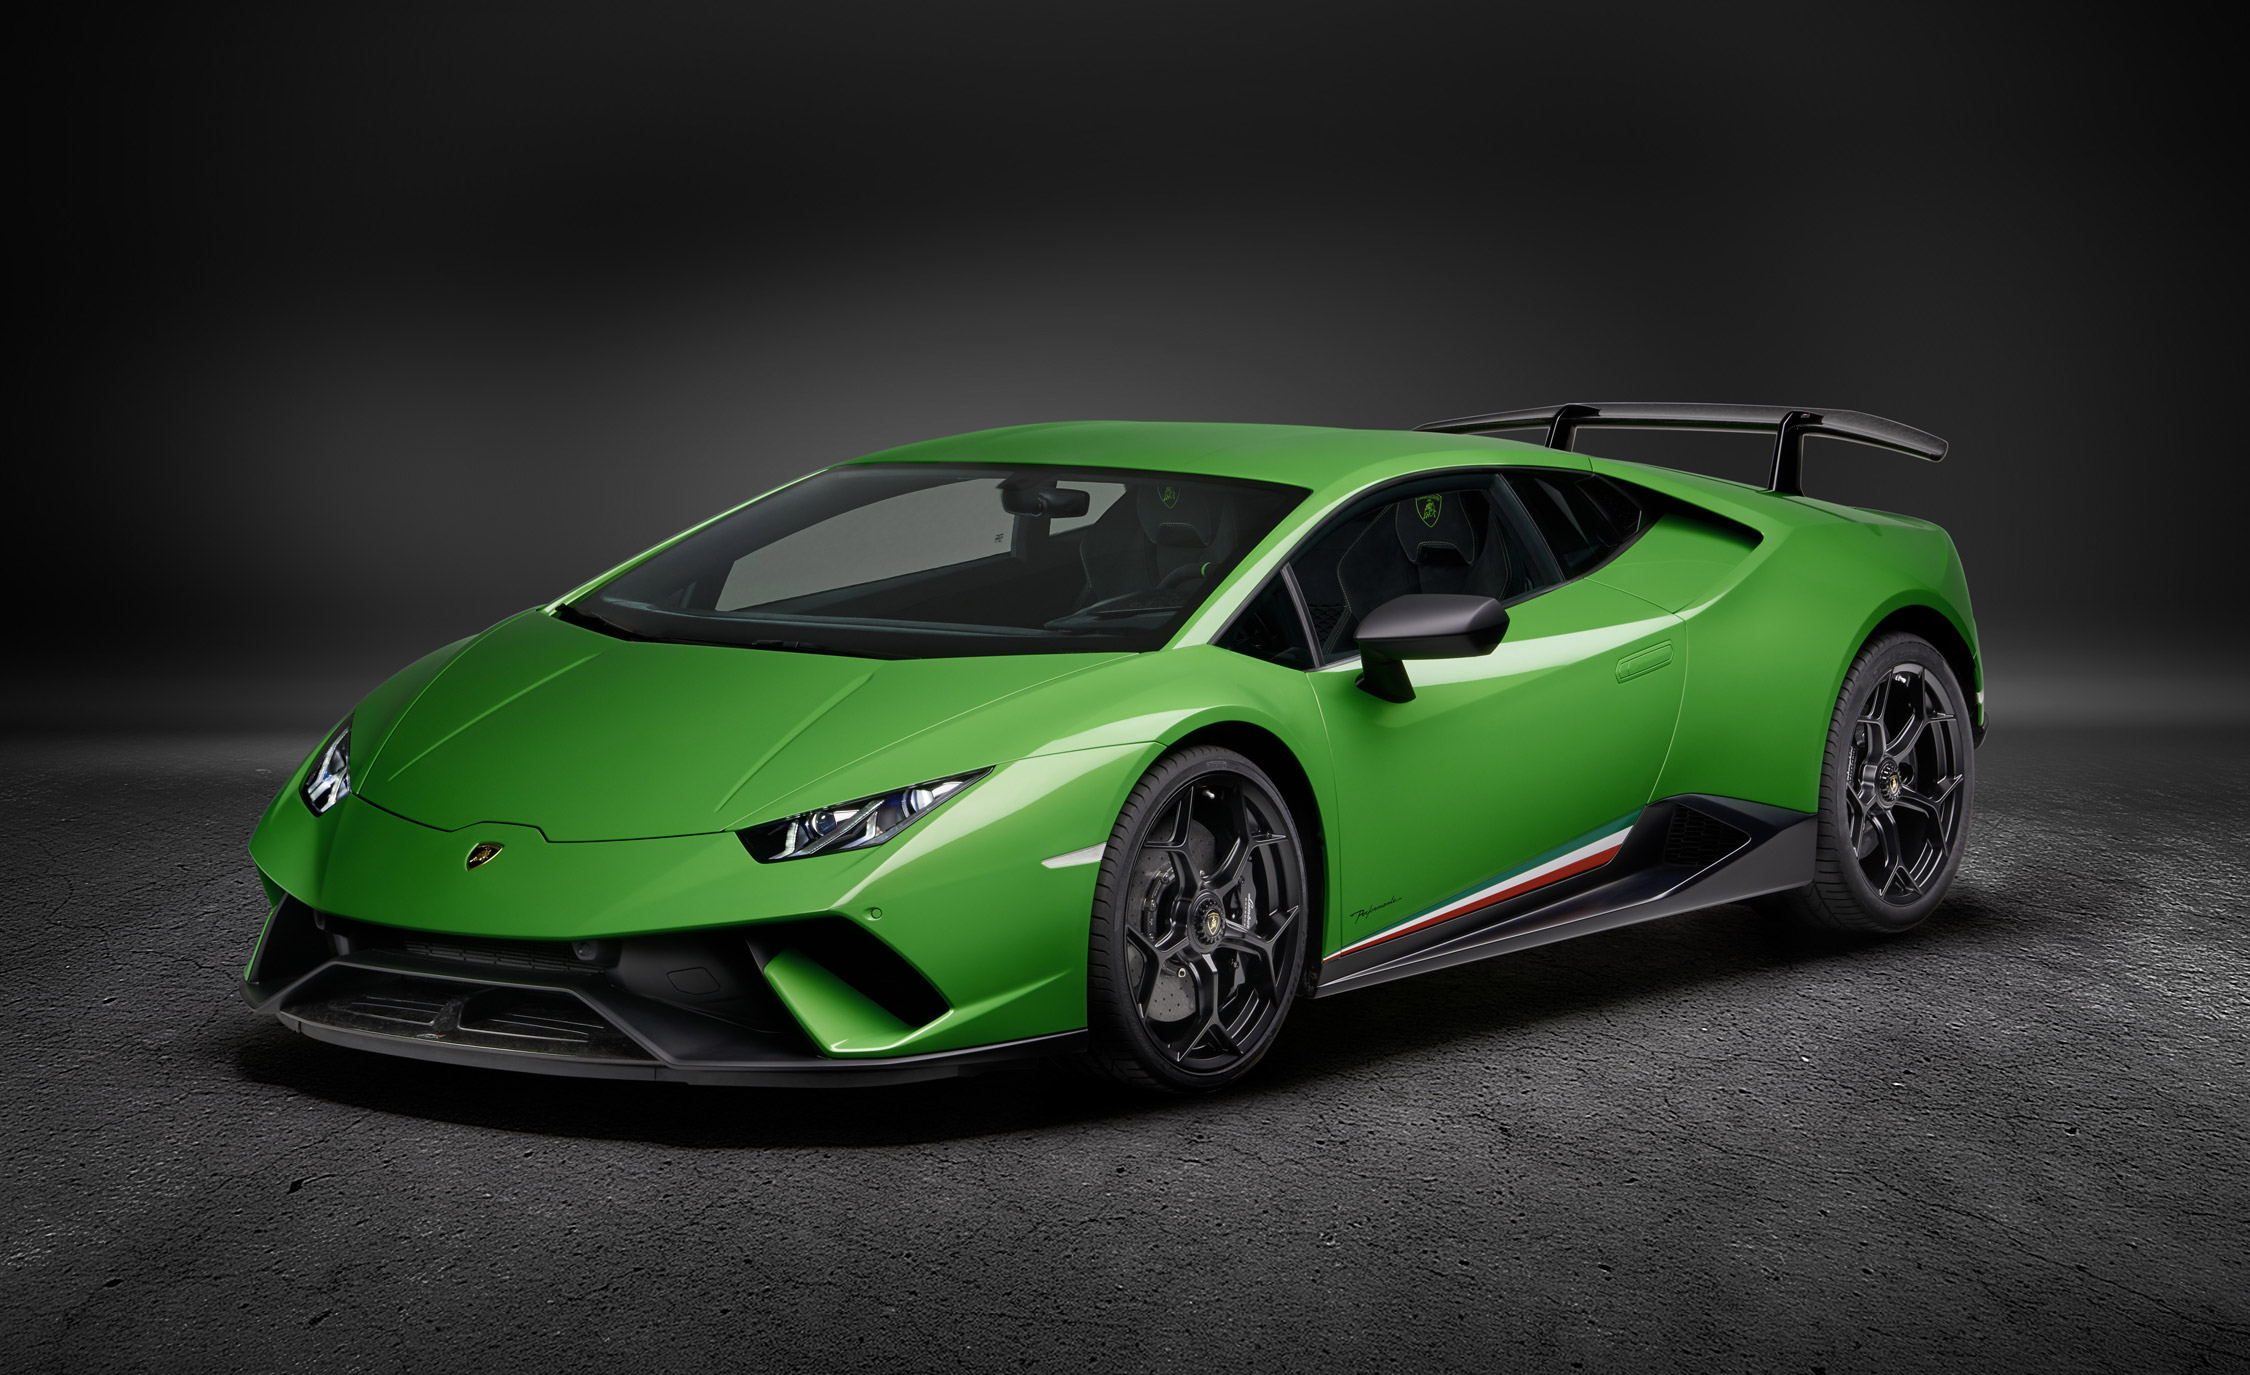 Lamborghini Huracan Specifications, Price, Mileage, Pics, Review